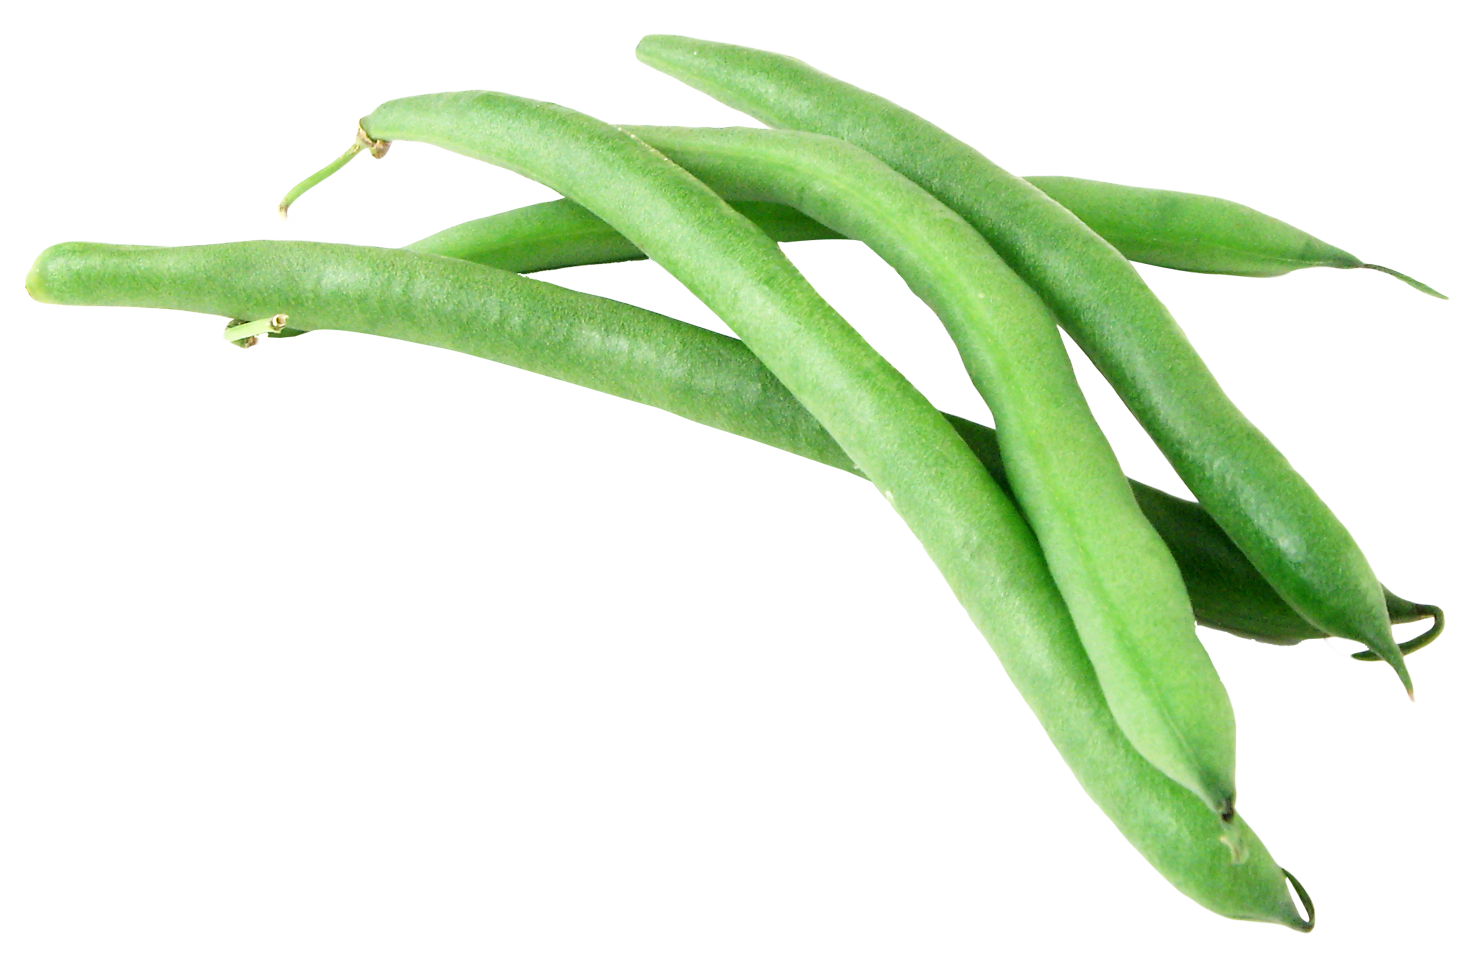 Green beans png image. Bean clipart french bean